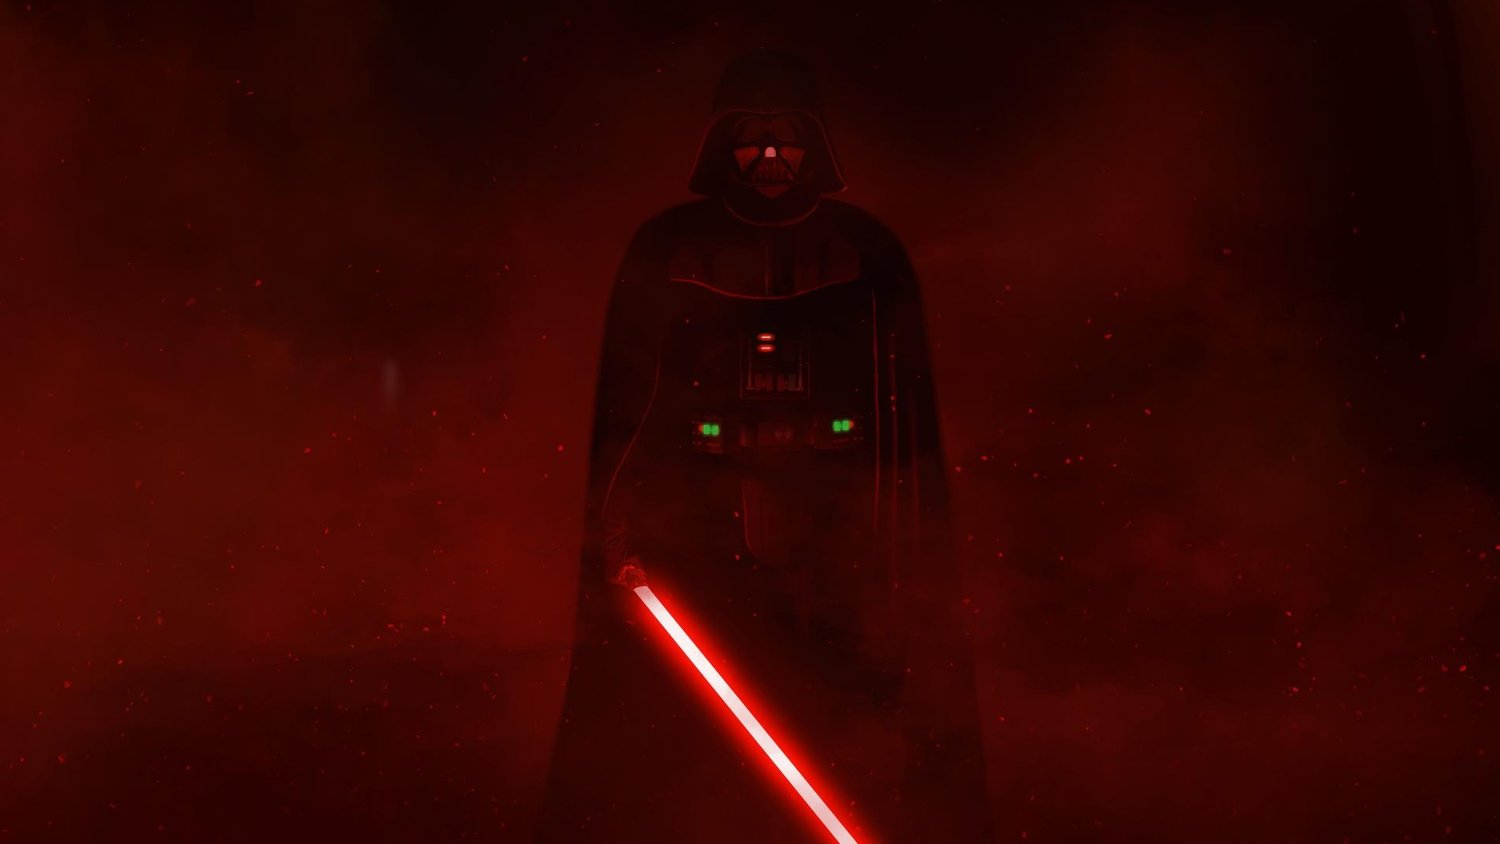 darth-vaders-final-epic-scene-in-rogue-one-was-added-at-the-last-minute-social